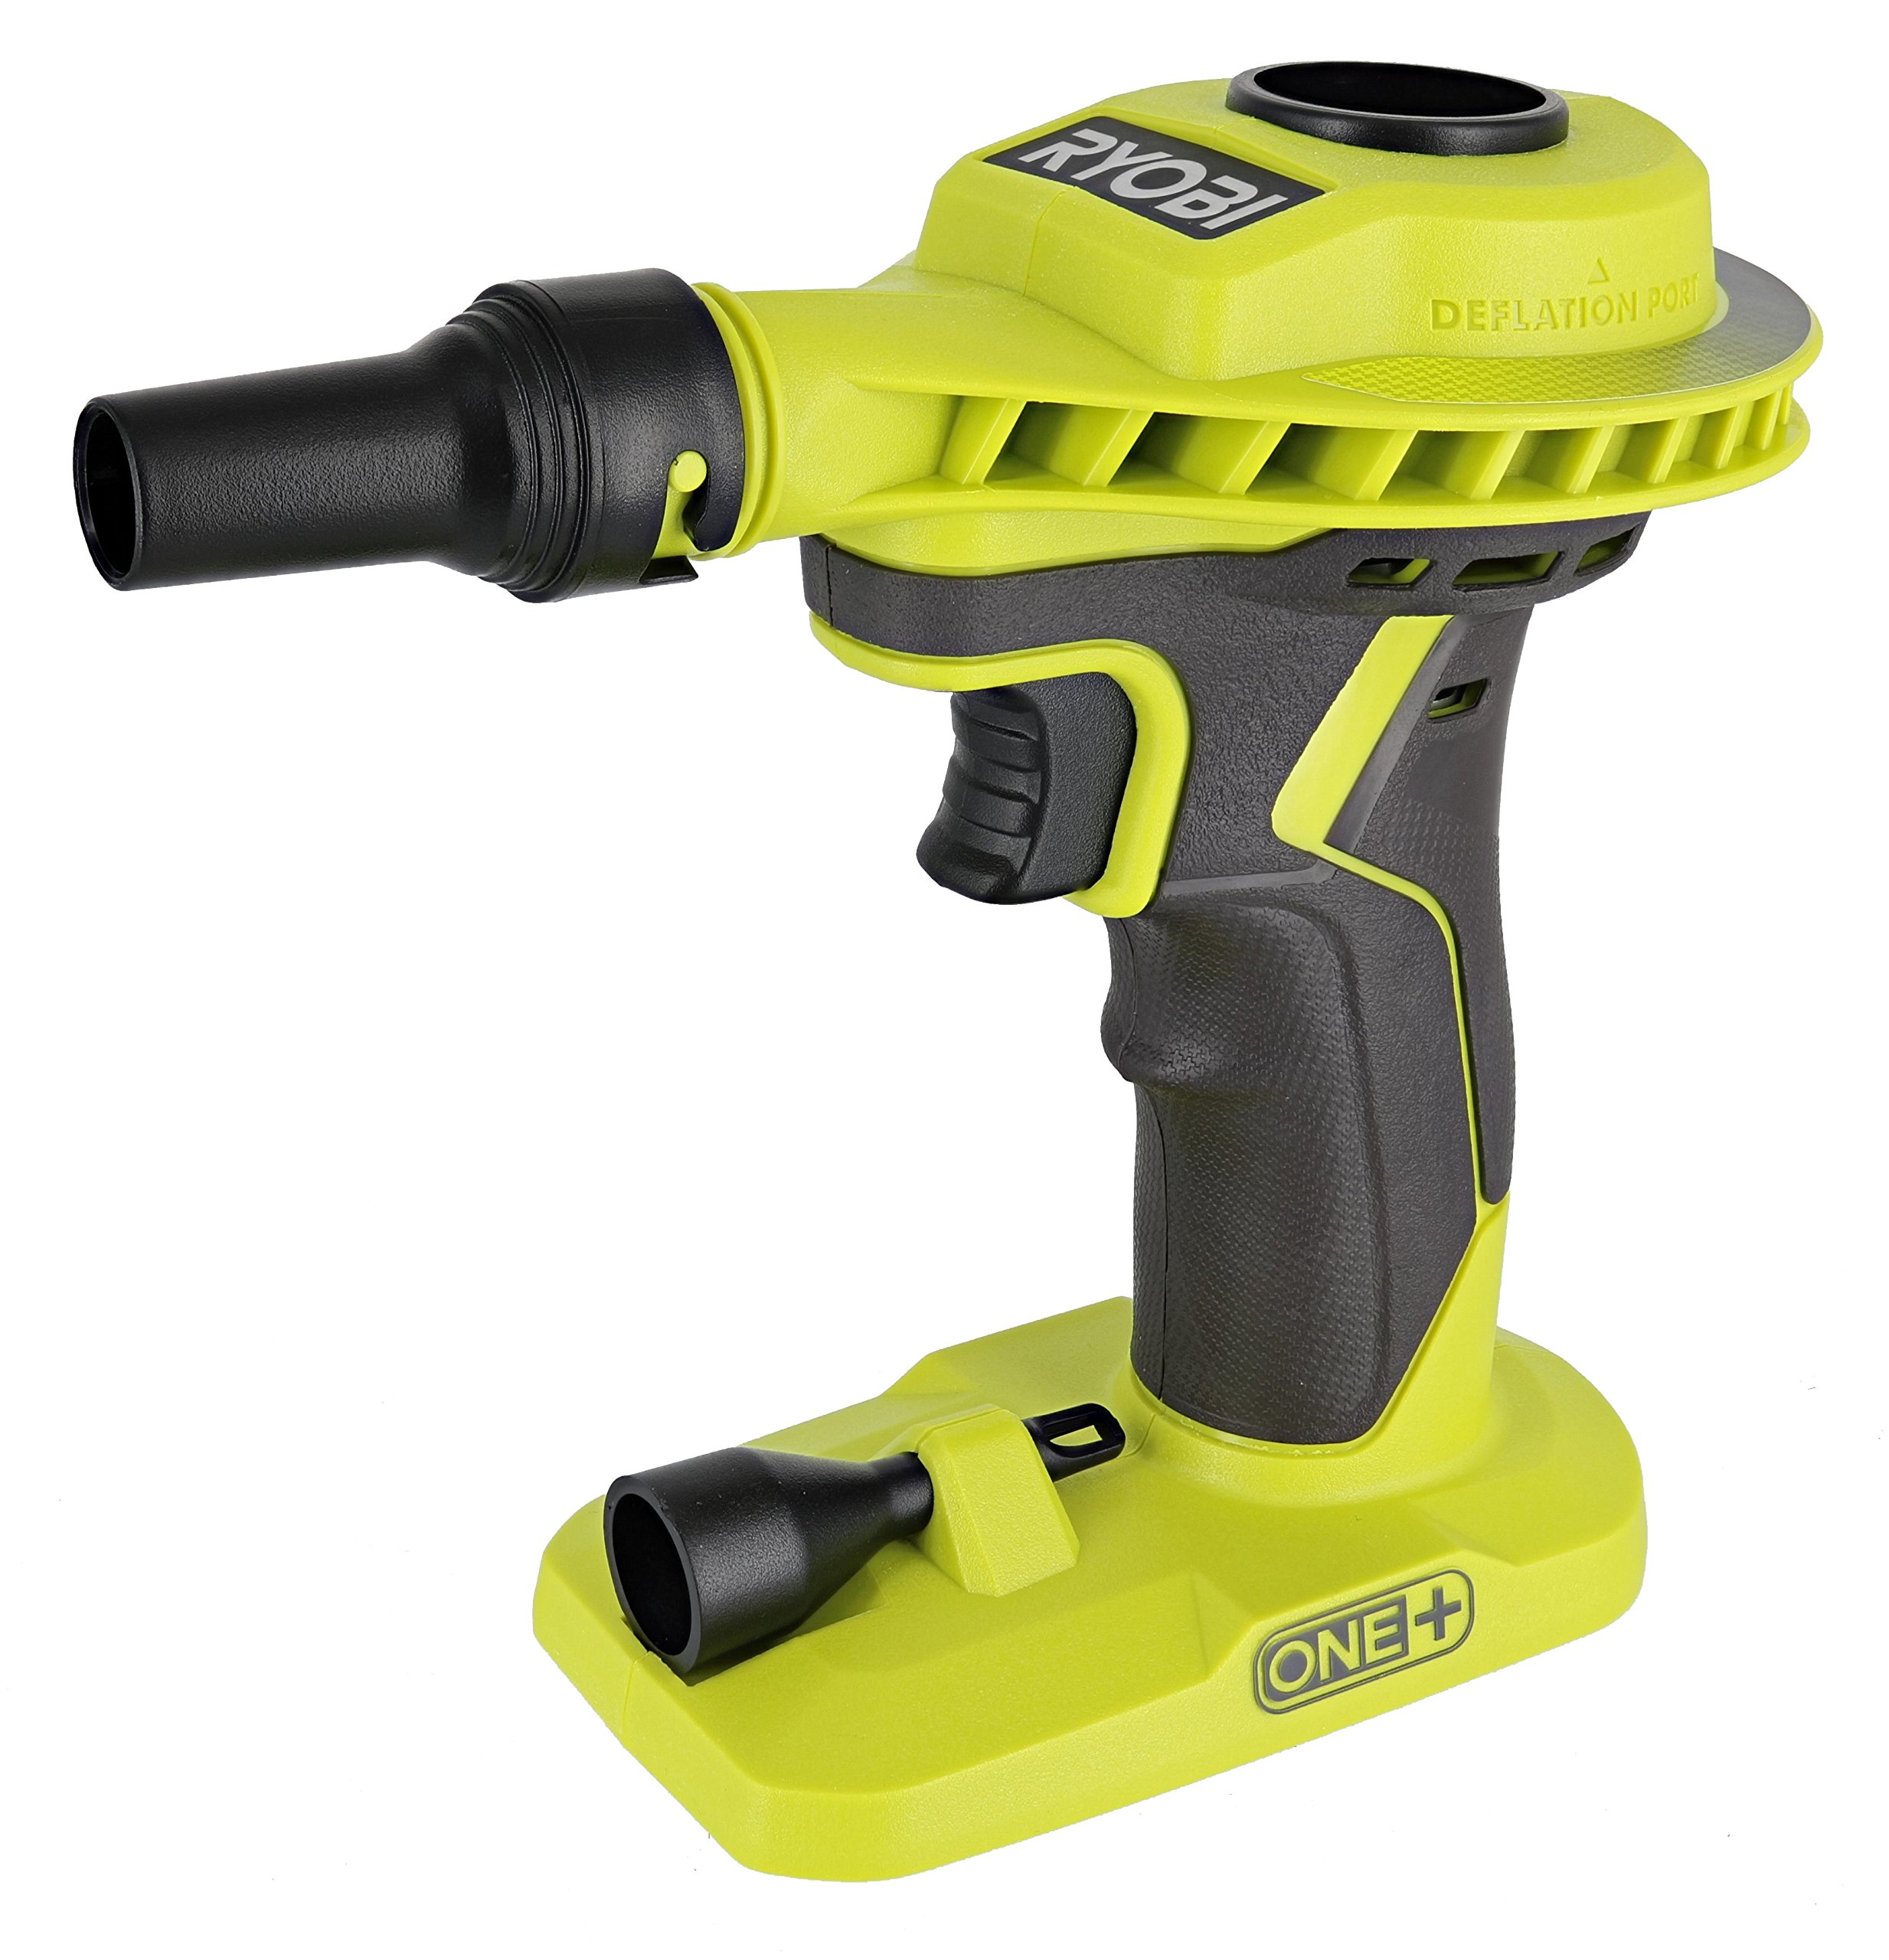 Bearings & Bit-Repair Parts Ryobi P600 18V Cordless Trimmer